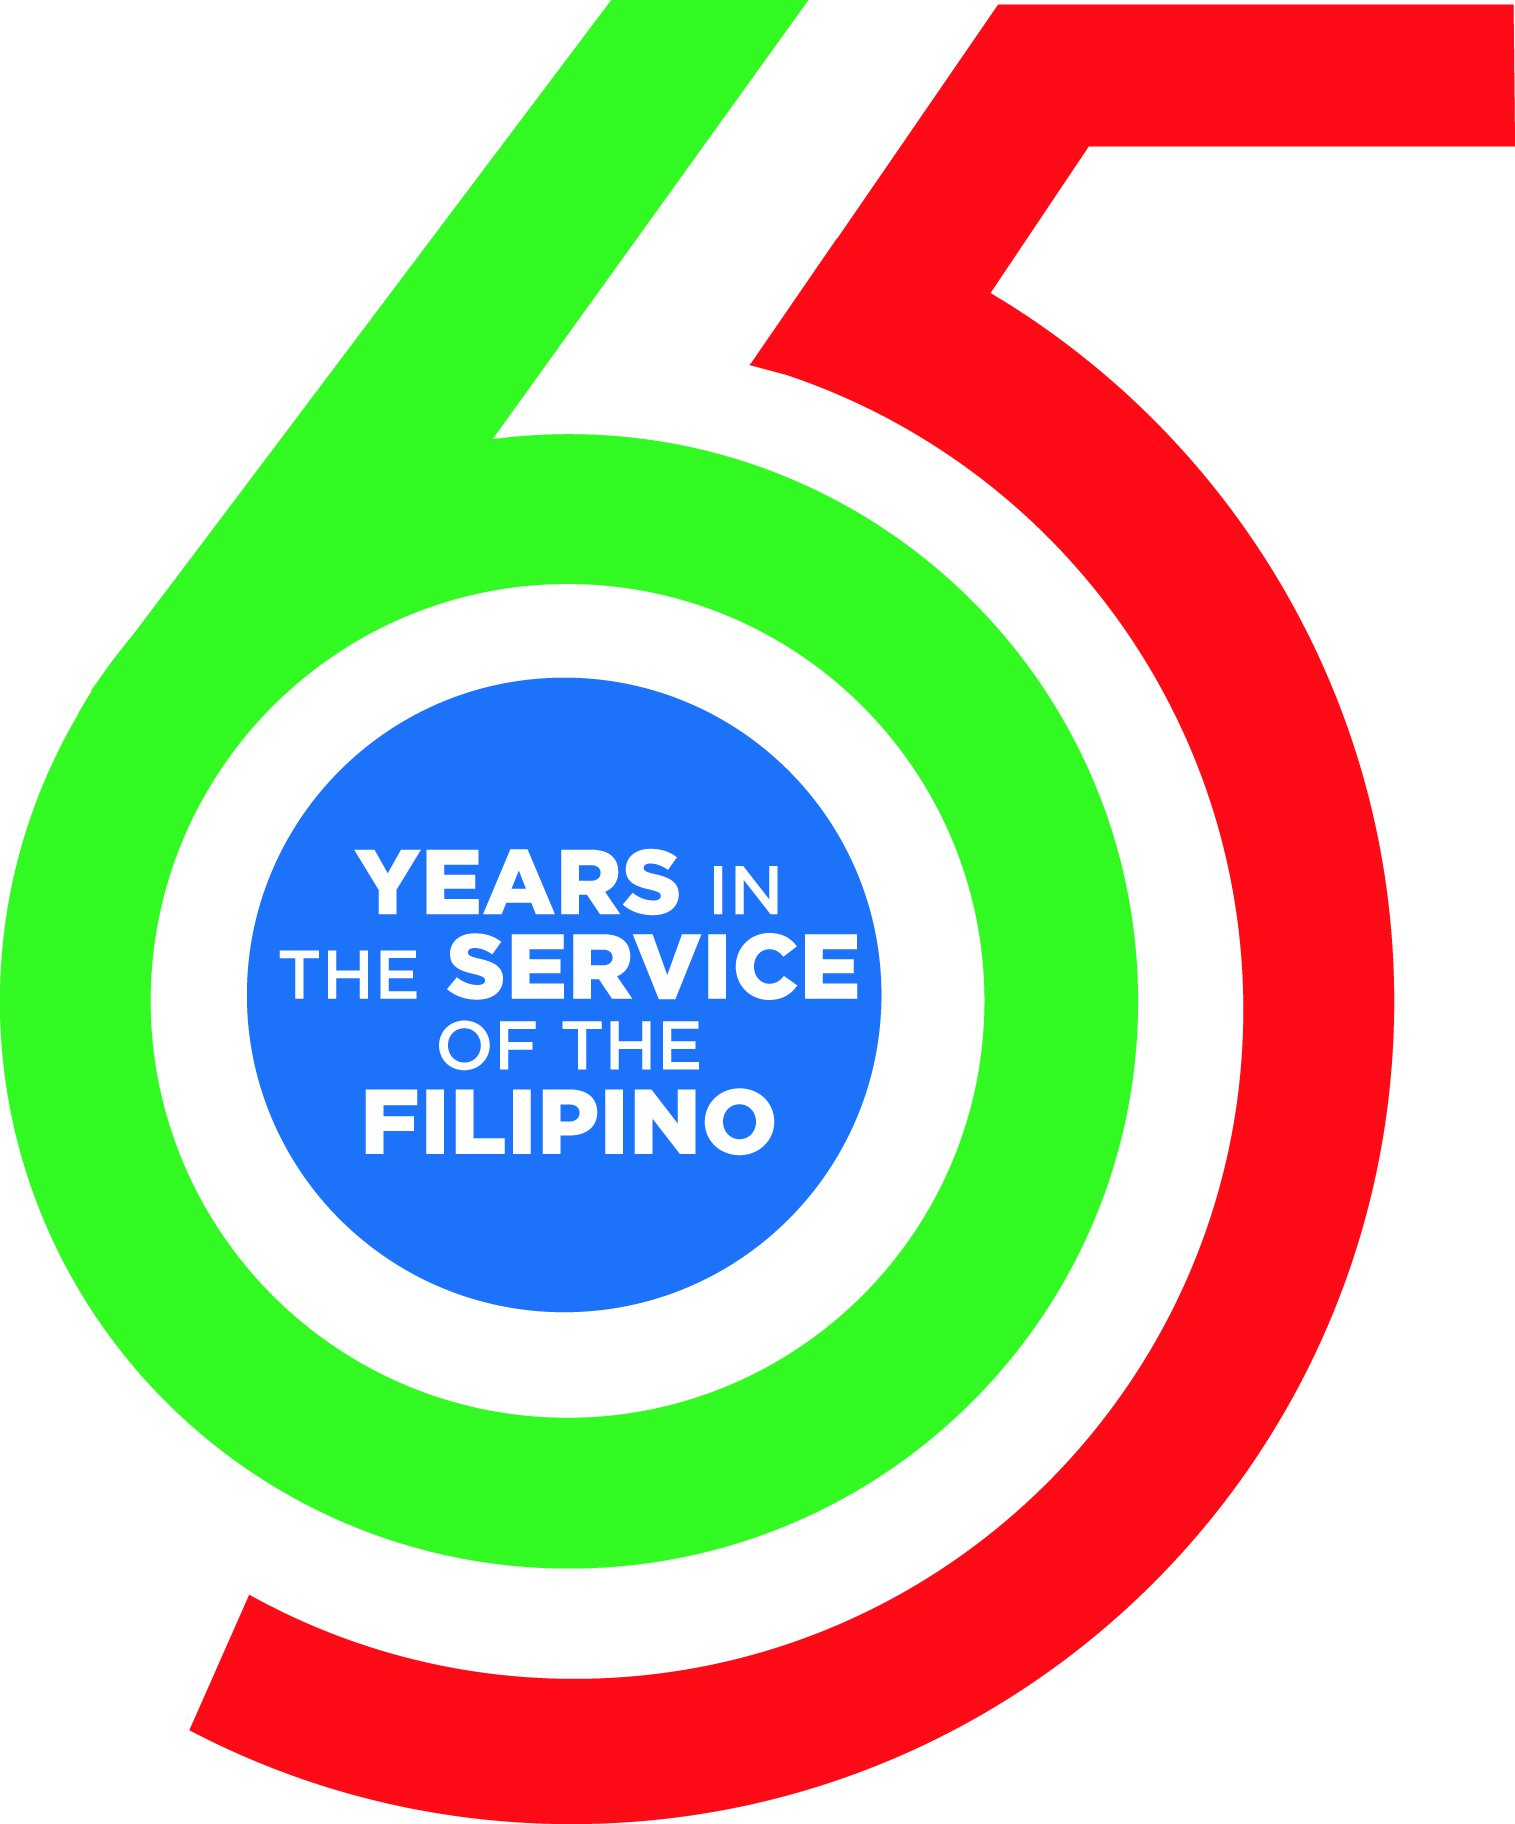 65 years in the service of the filipino